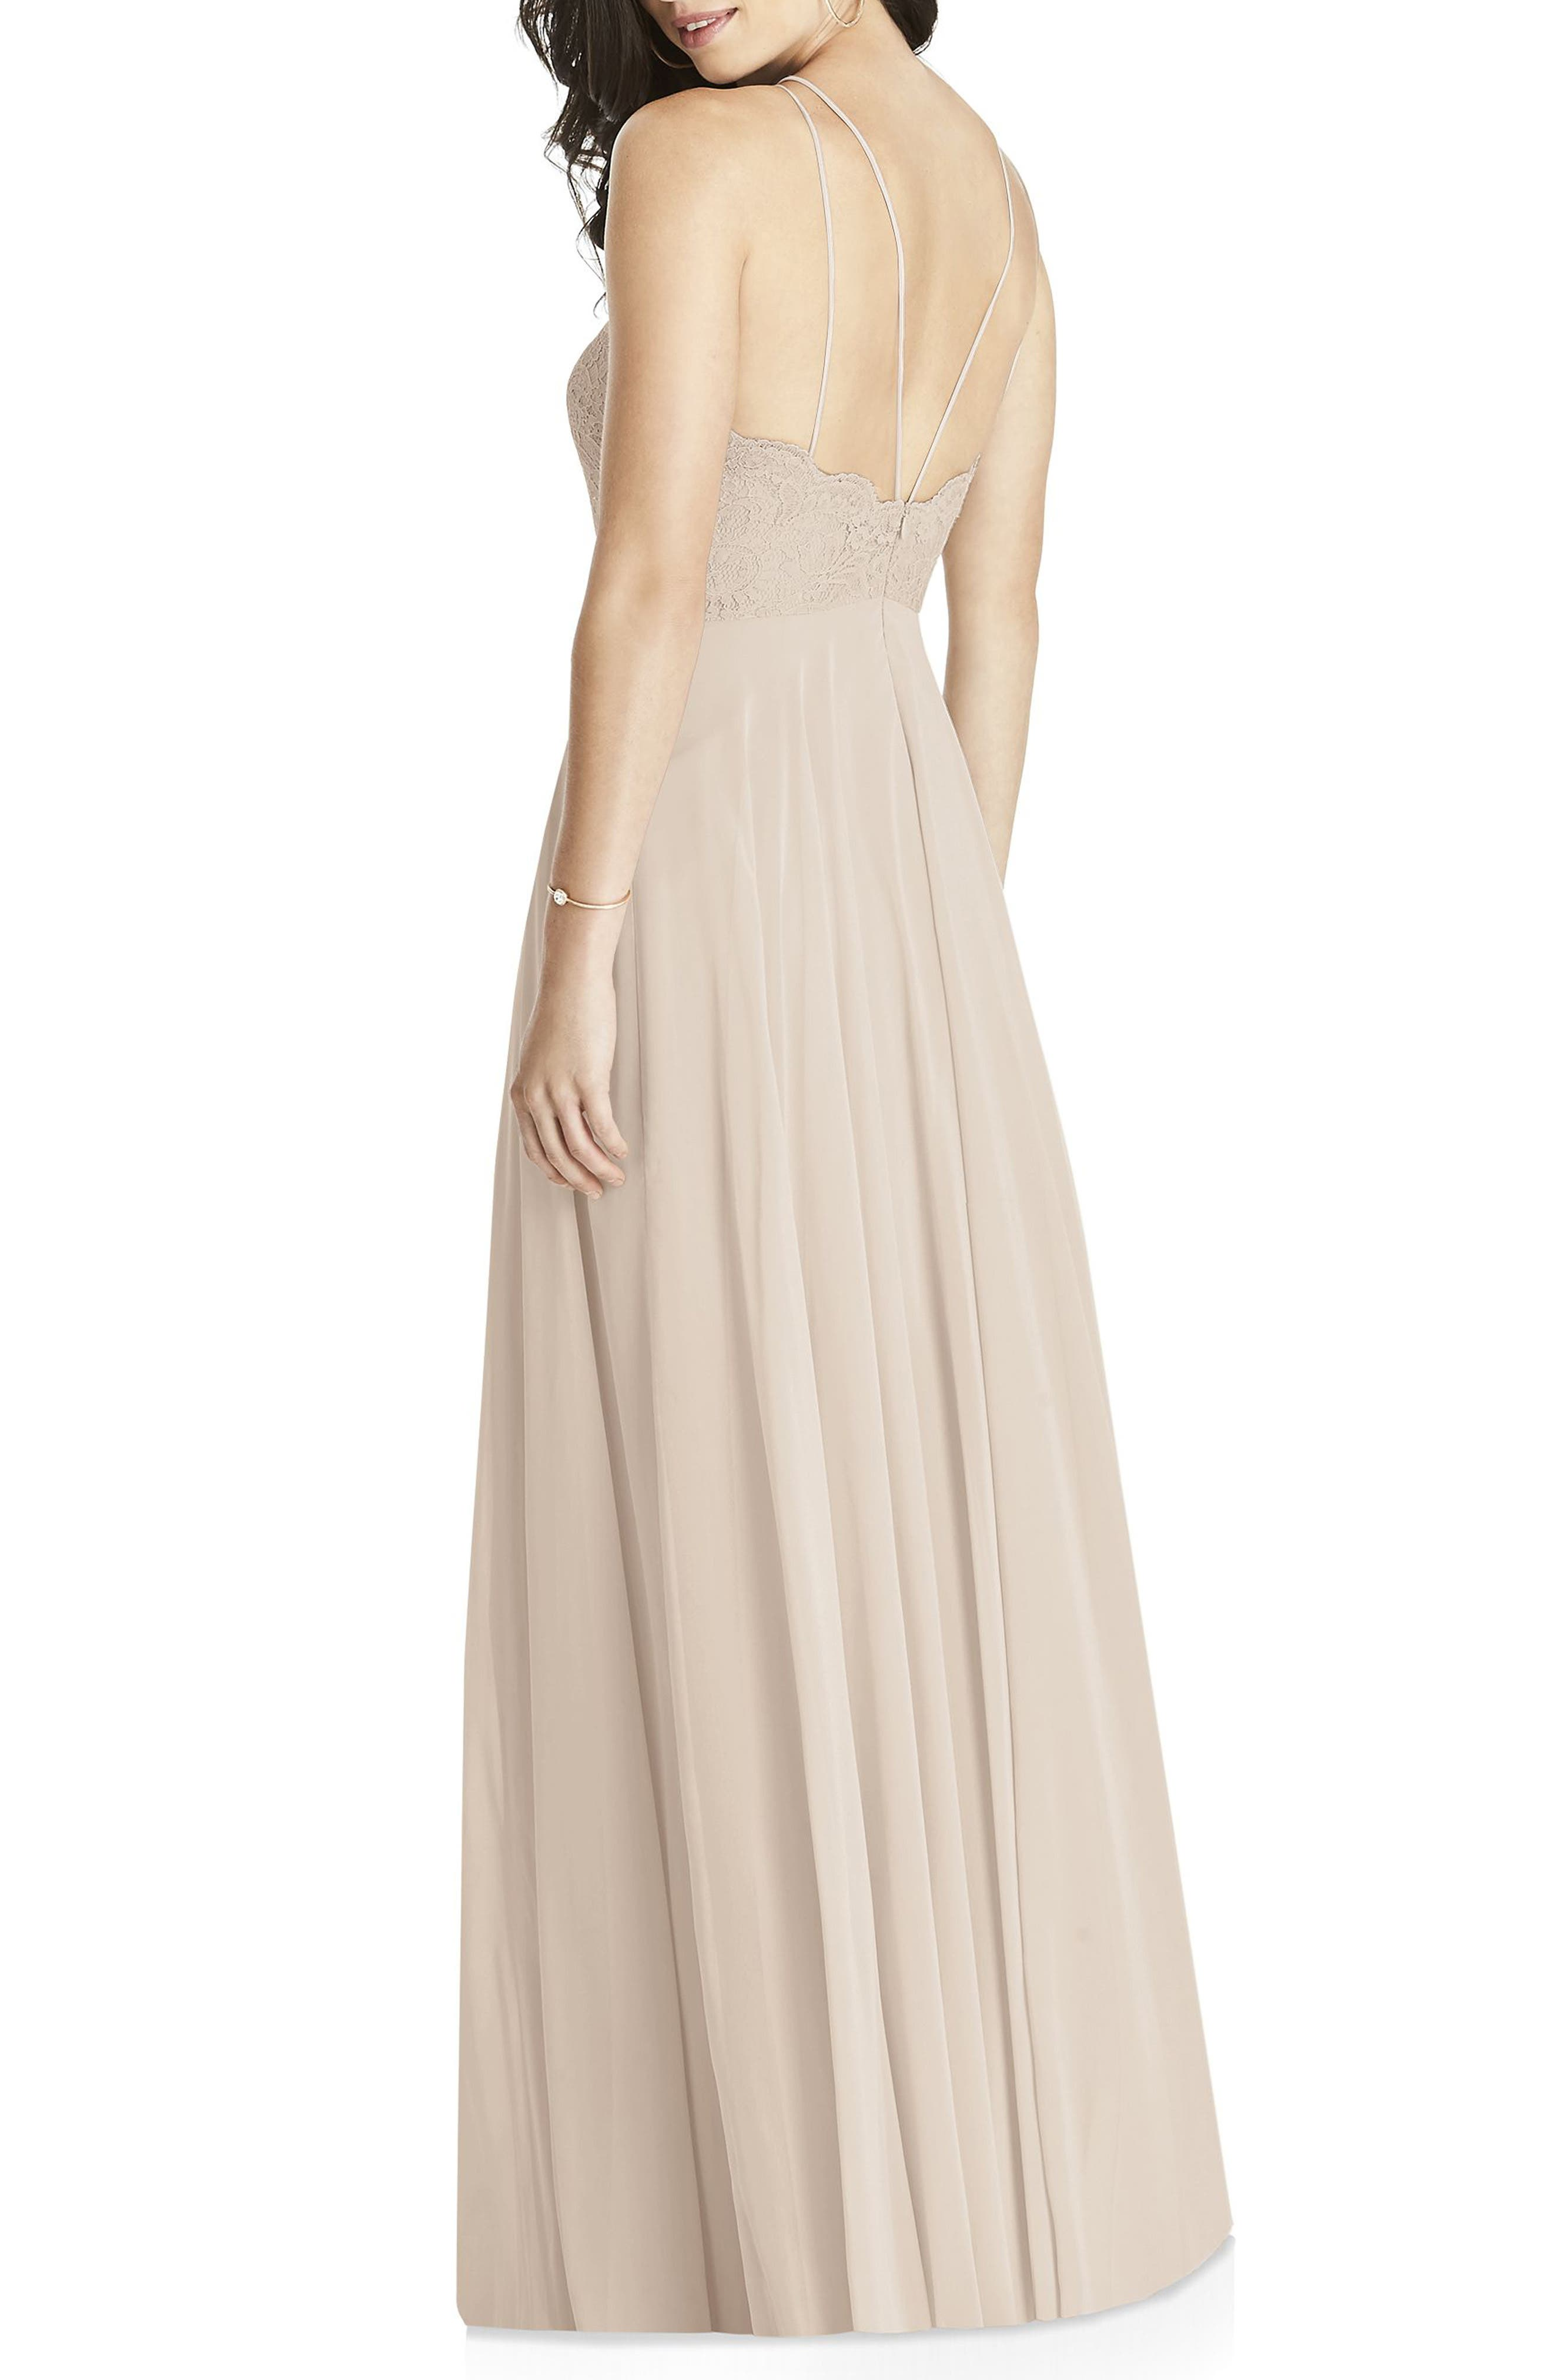 DESSY COLLECTION, Lace & Chiffon Halter Gown, Alternate thumbnail 2, color, CAMEO